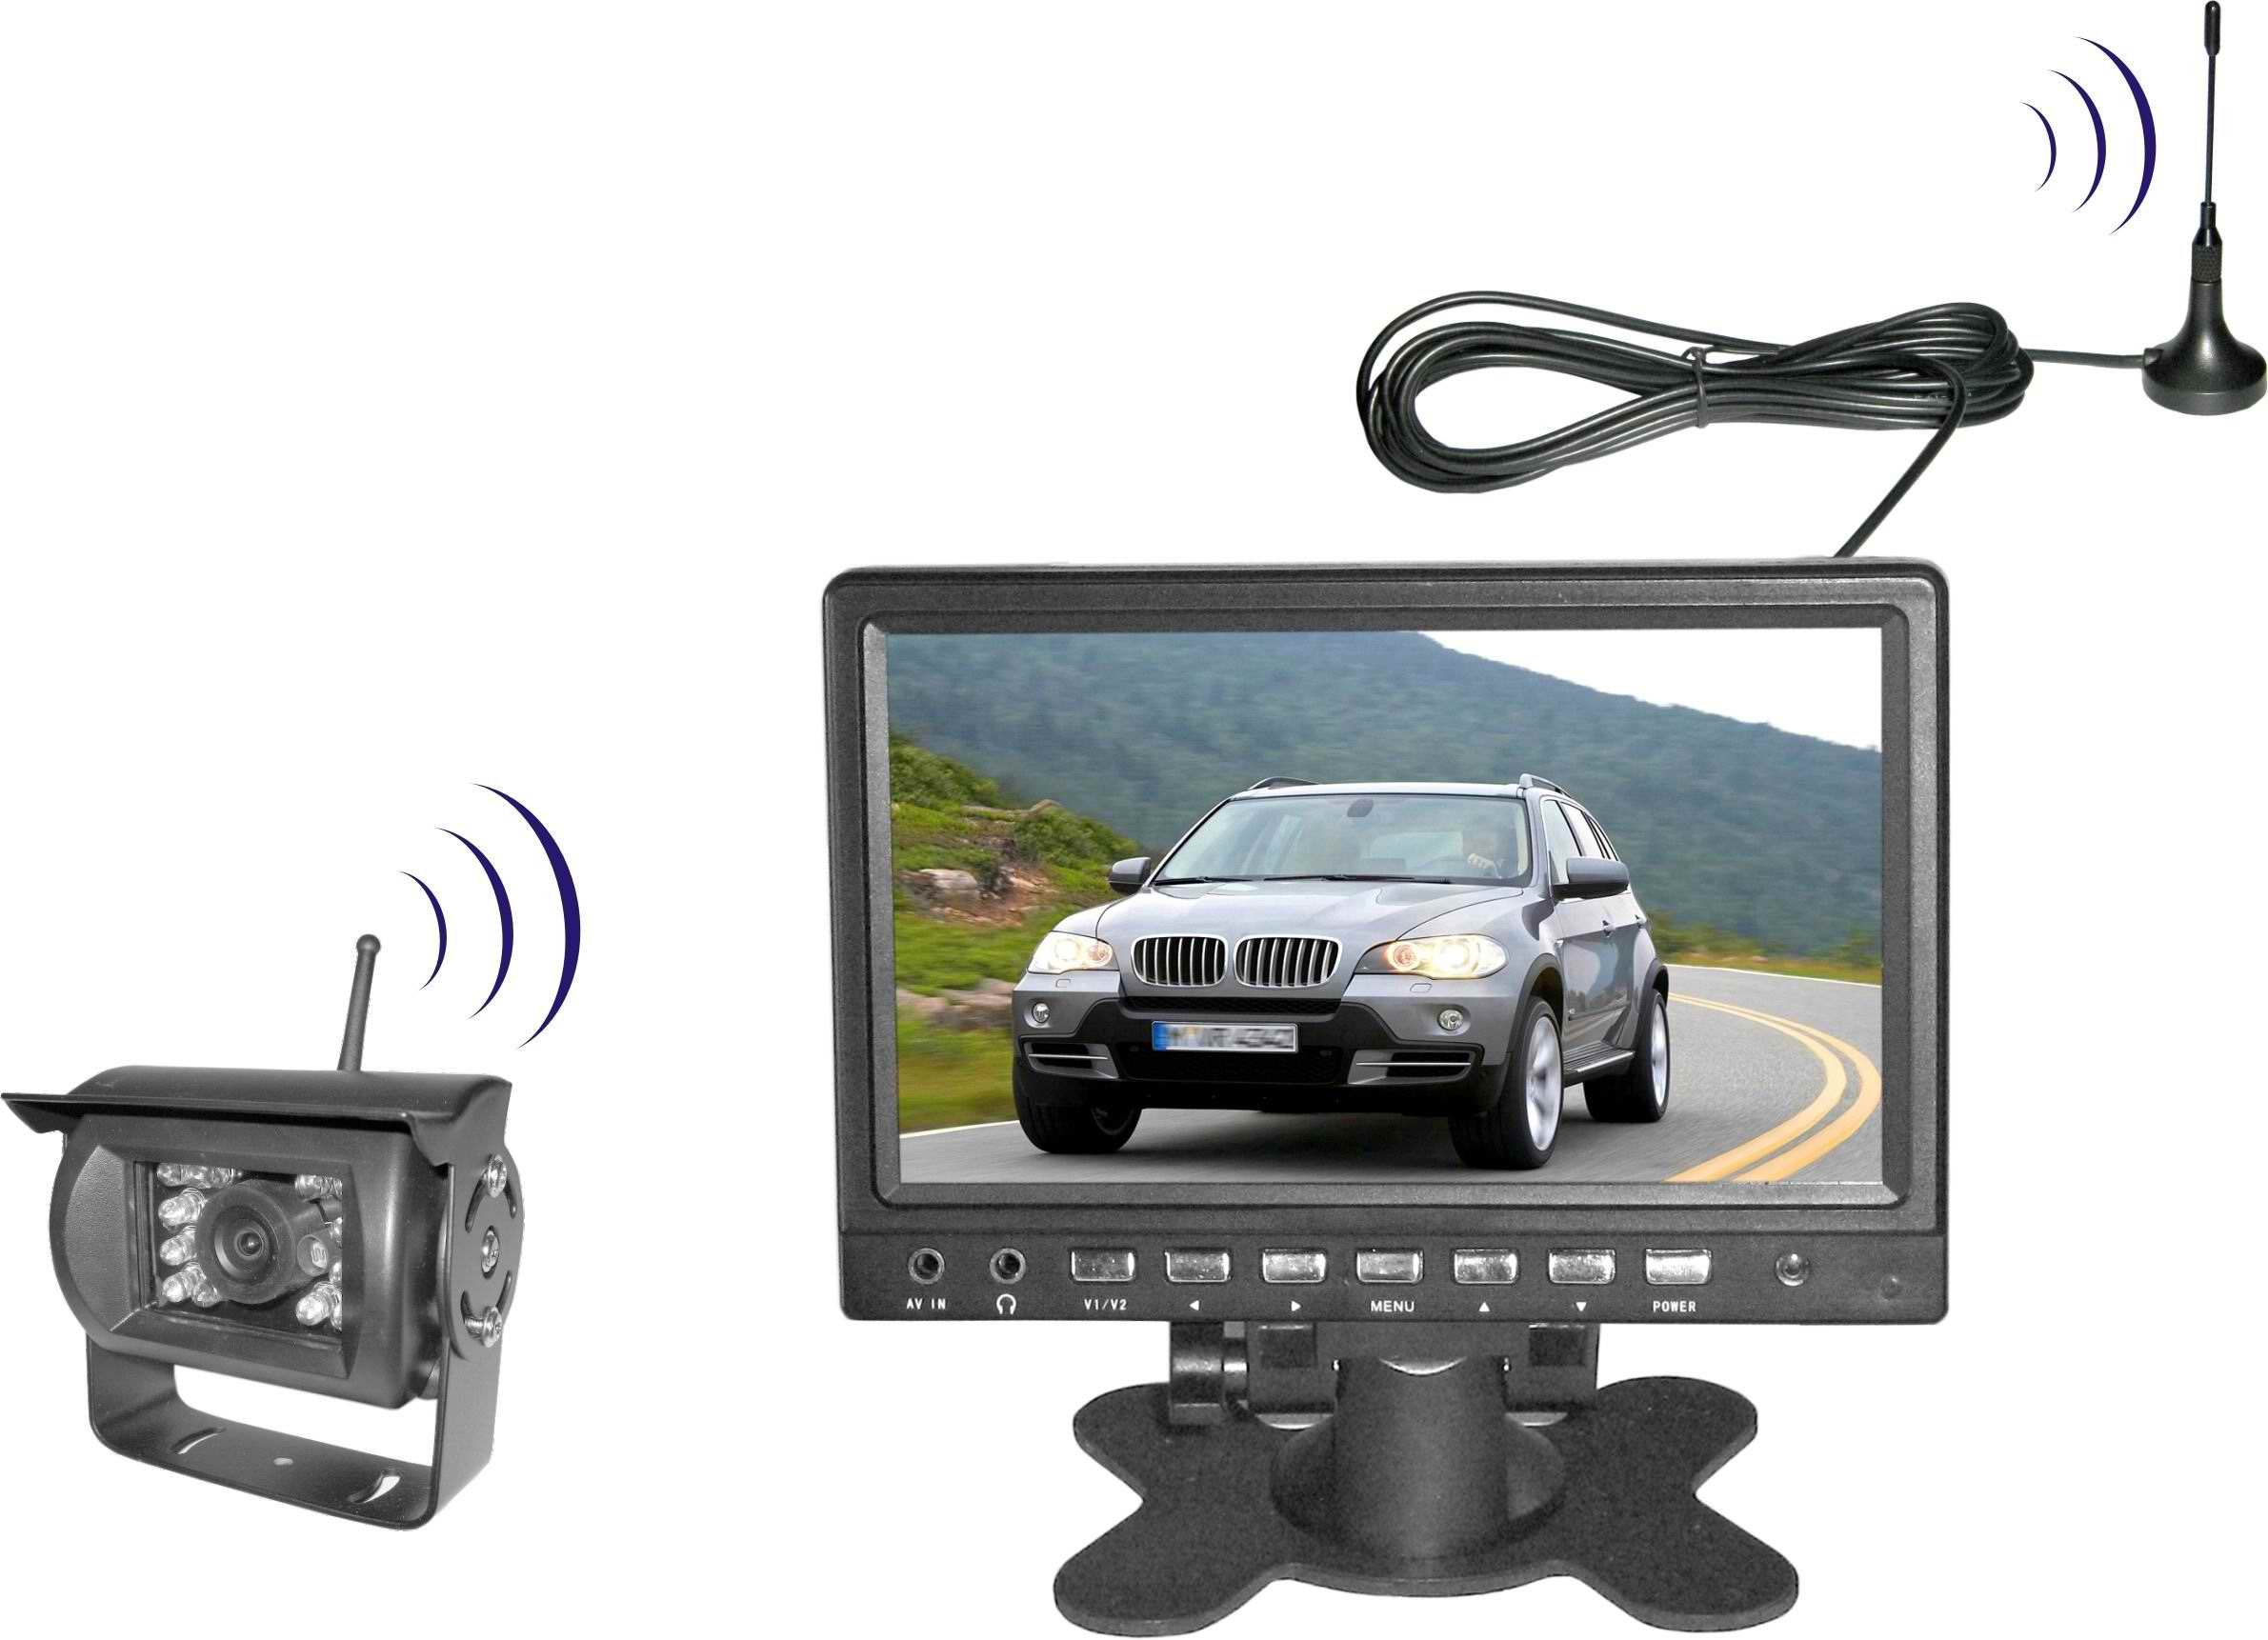 Car rear view security camera system